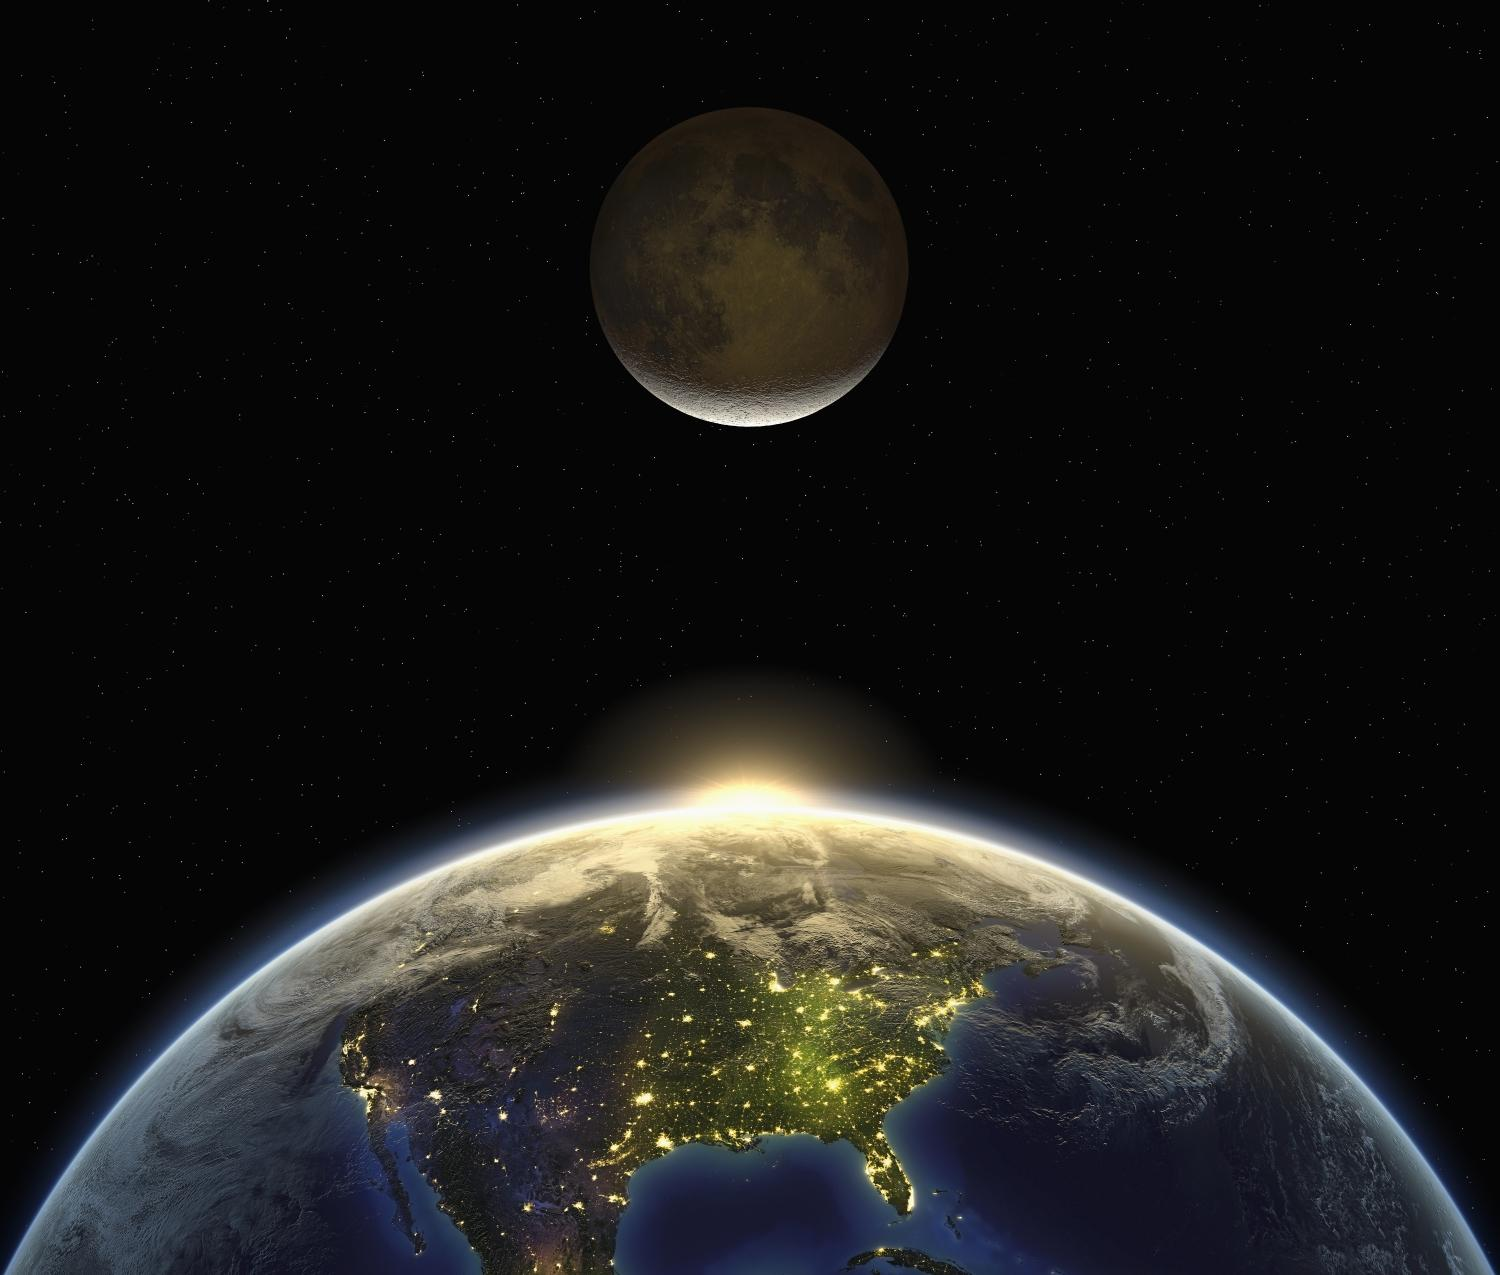 USA --- the sun and the moon appearing over the earth. the dark side of the earth shows the city and night lights --- Image by © Matthias Kulka/Corbis